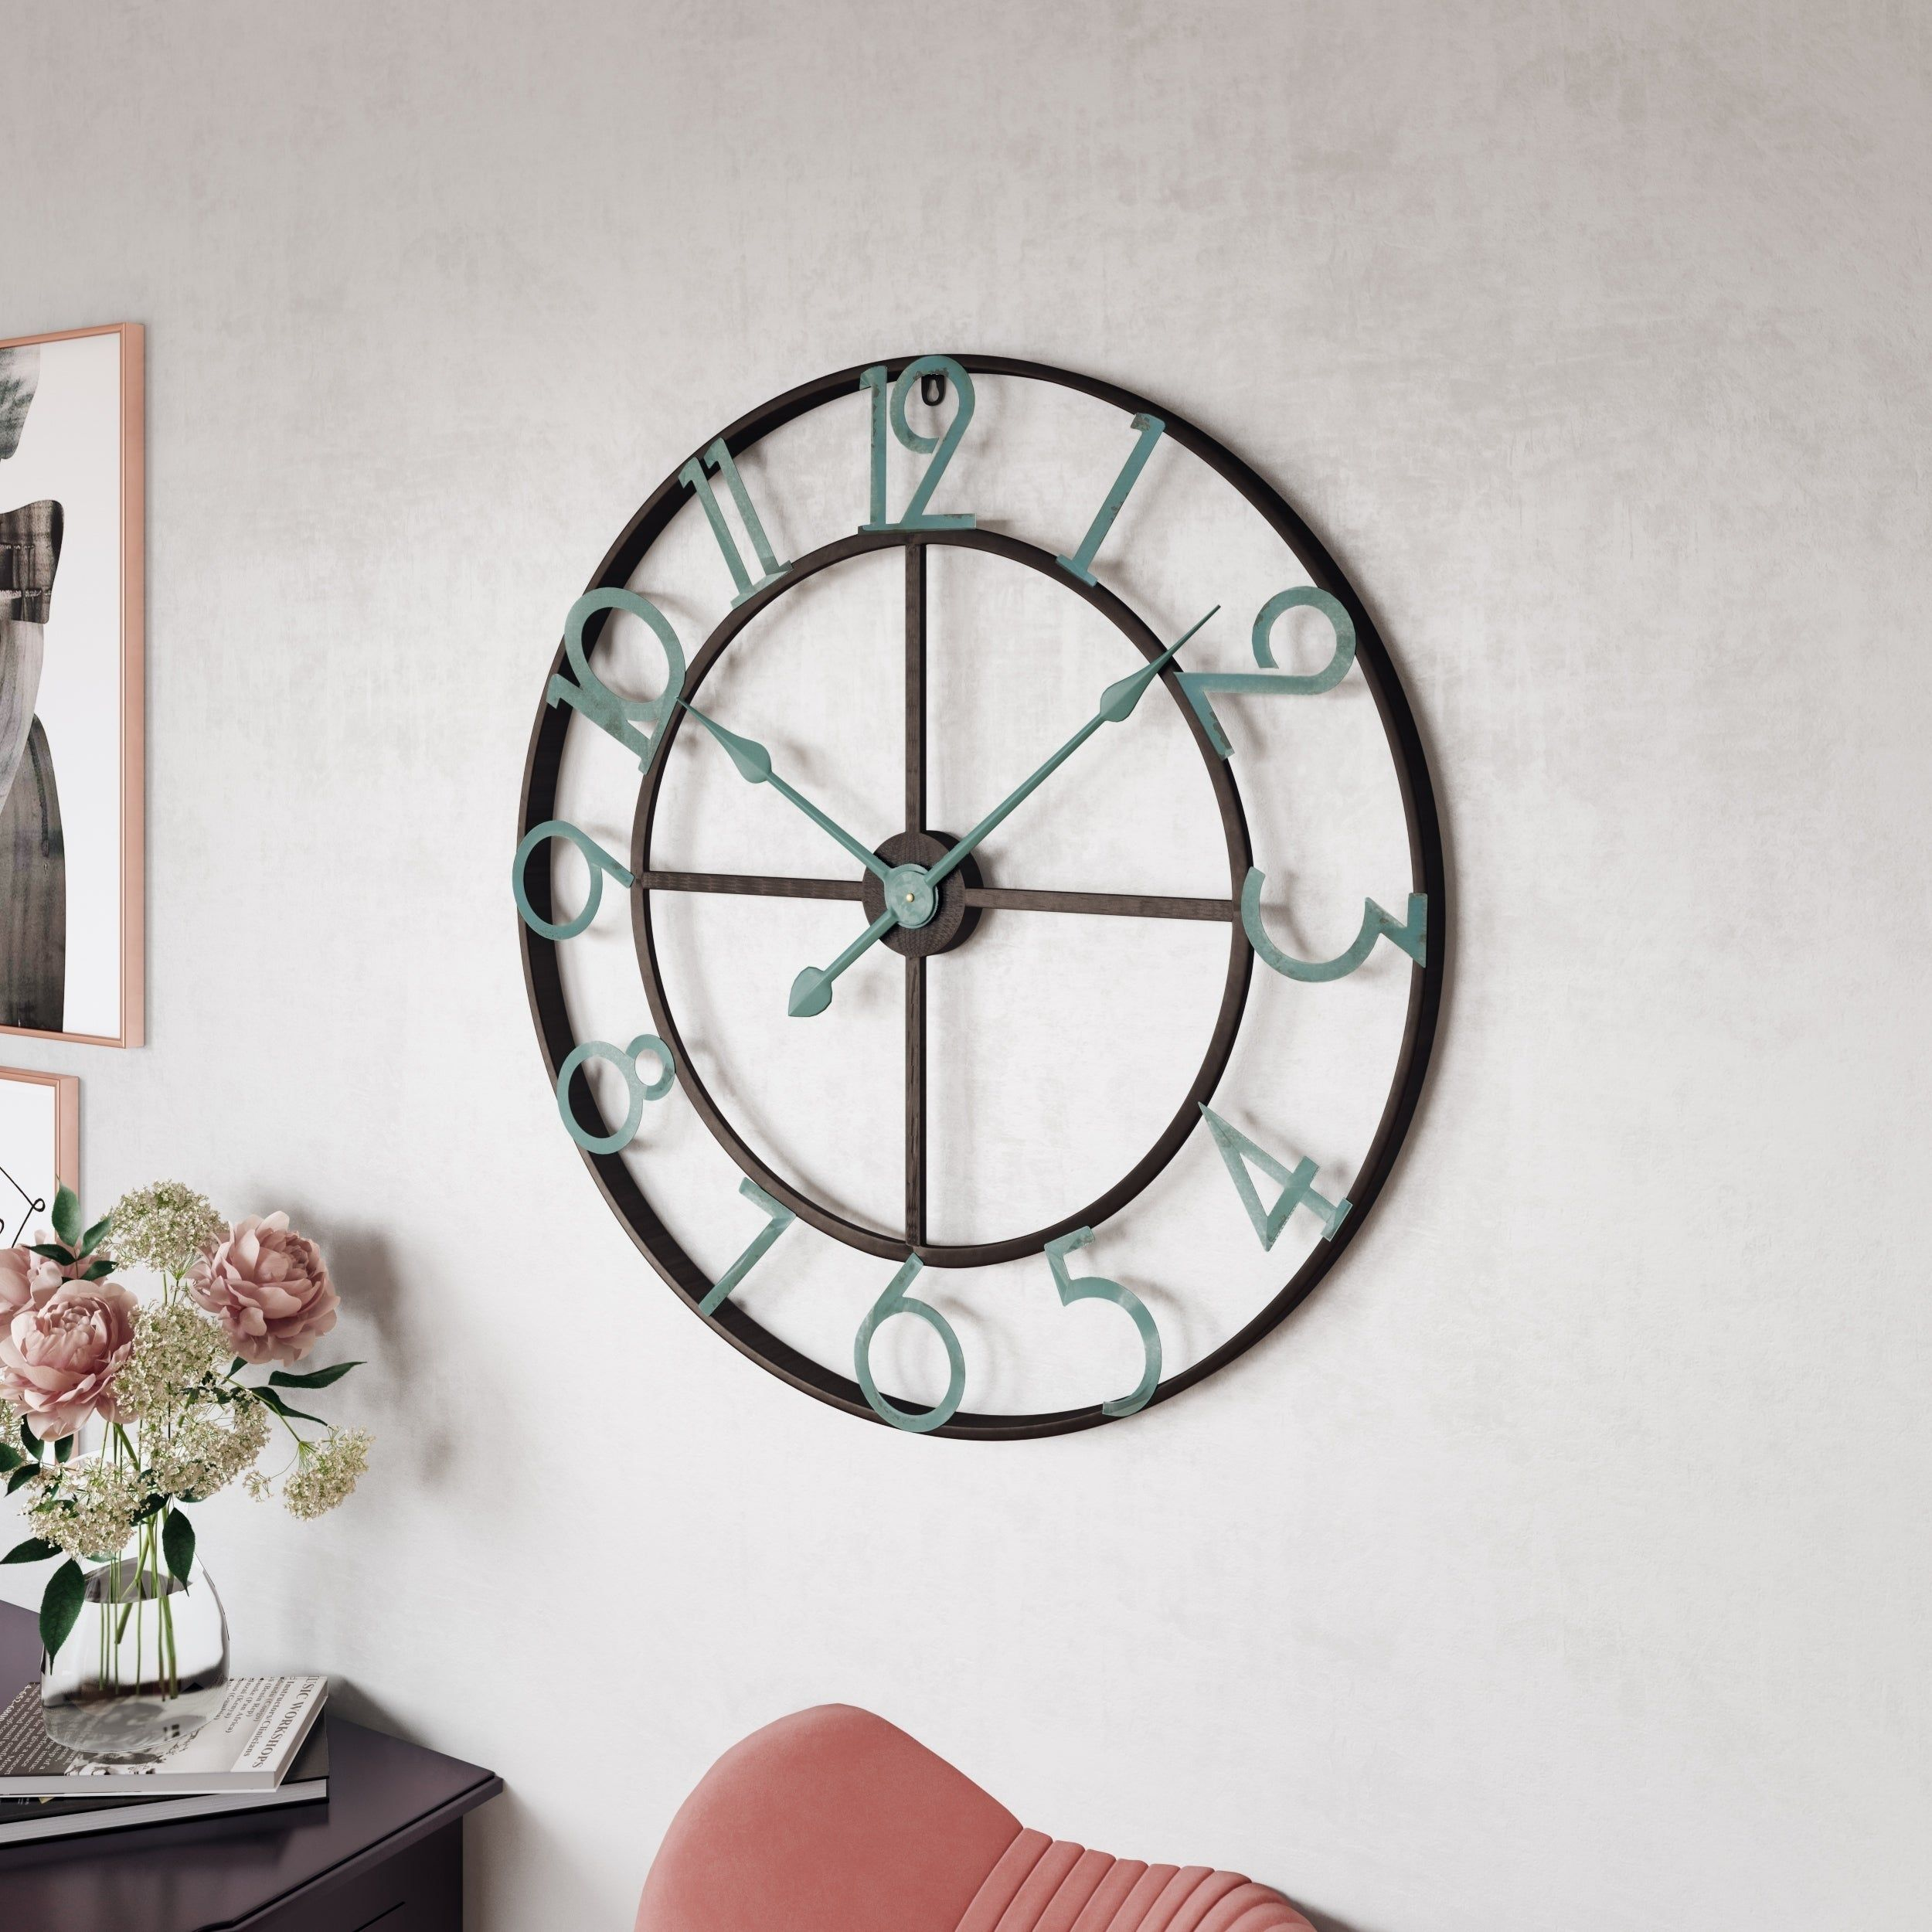 Online Shopping Bedding Furniture Electronics Jewelry Clothing More Decorative Boxes Beautiful Wooden Boxes Wood Boxes Wall Clock Oversized Wall Clock Clock